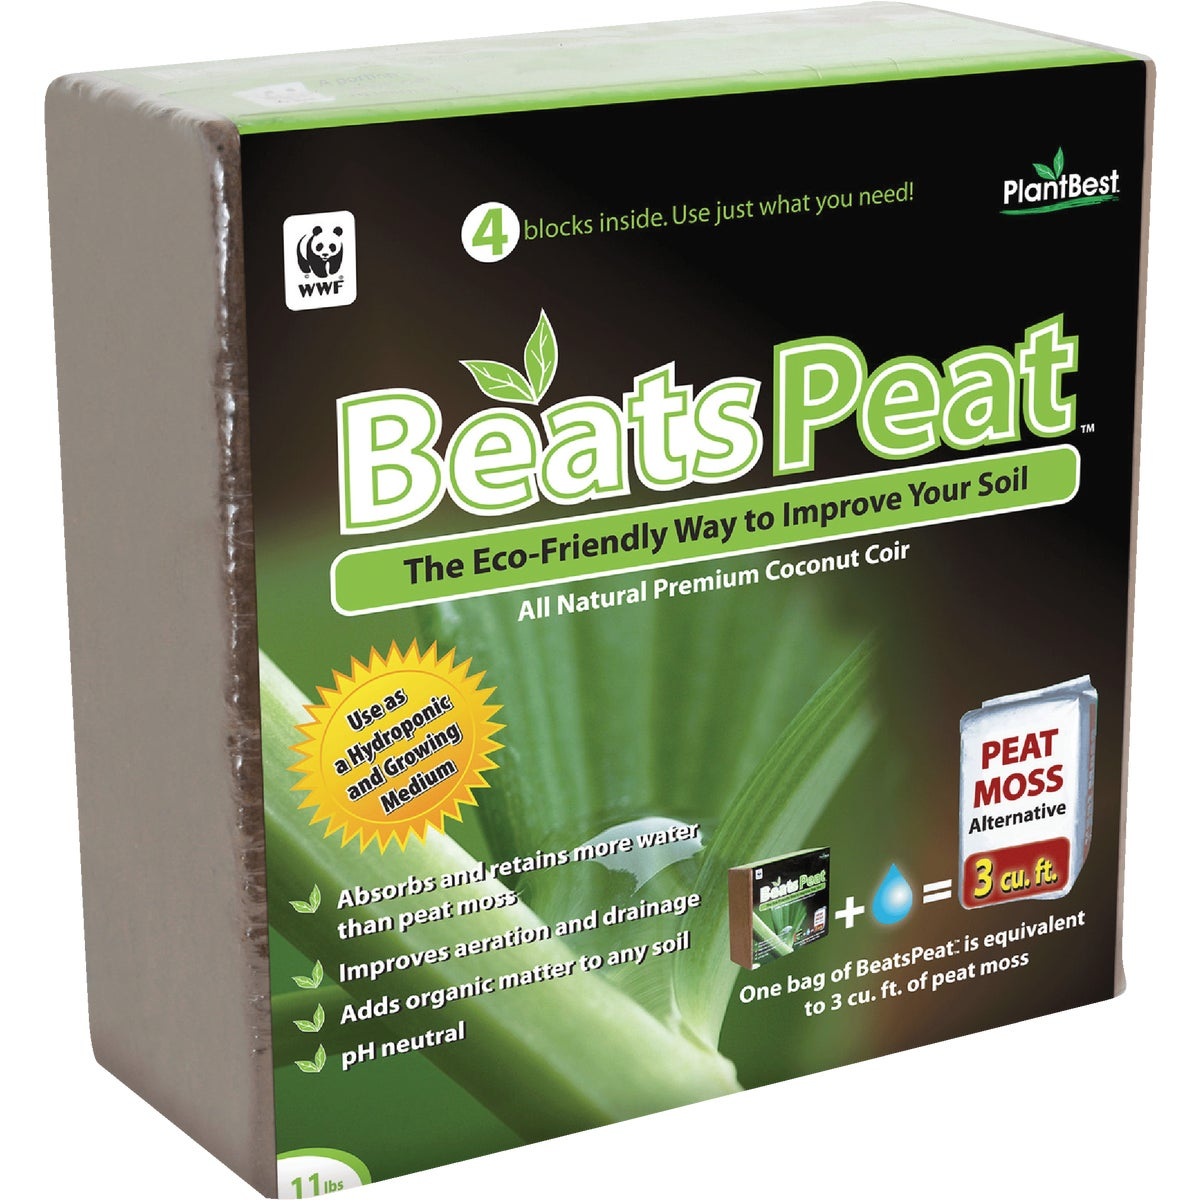 3 CU FT BEATS PEAT